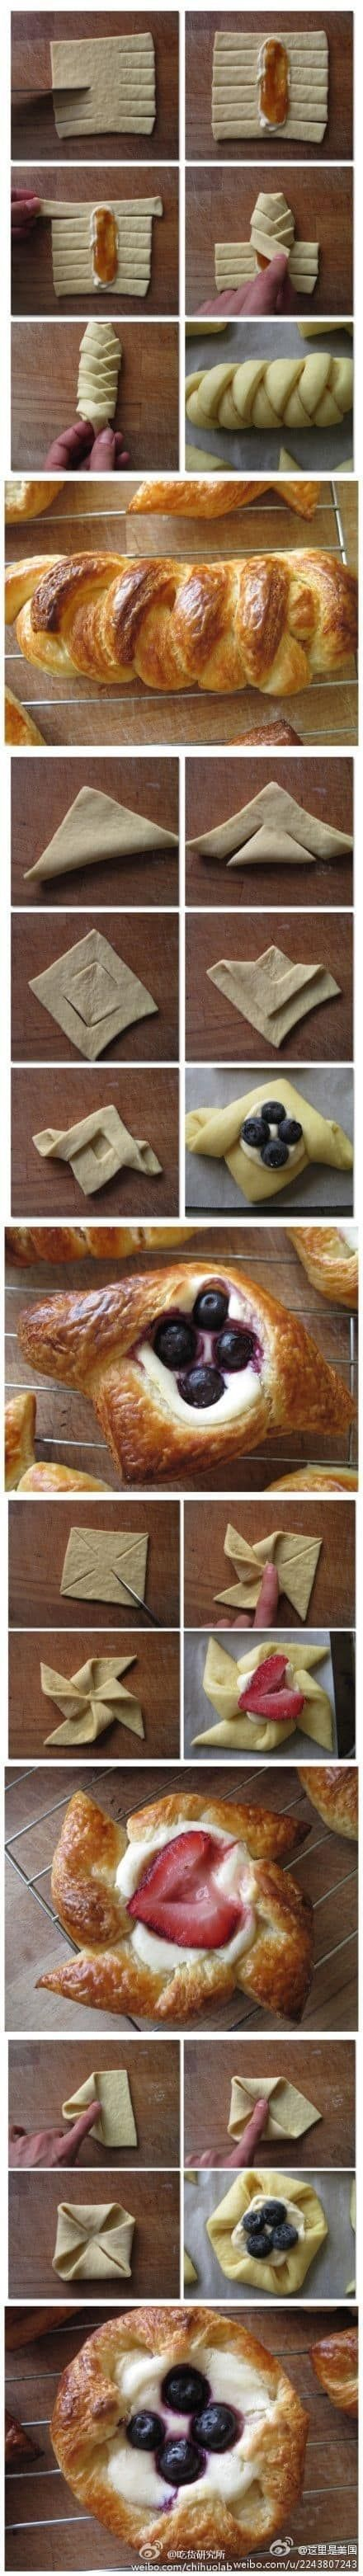 40 Creative Food Hacks That Will Change The Way You Cook